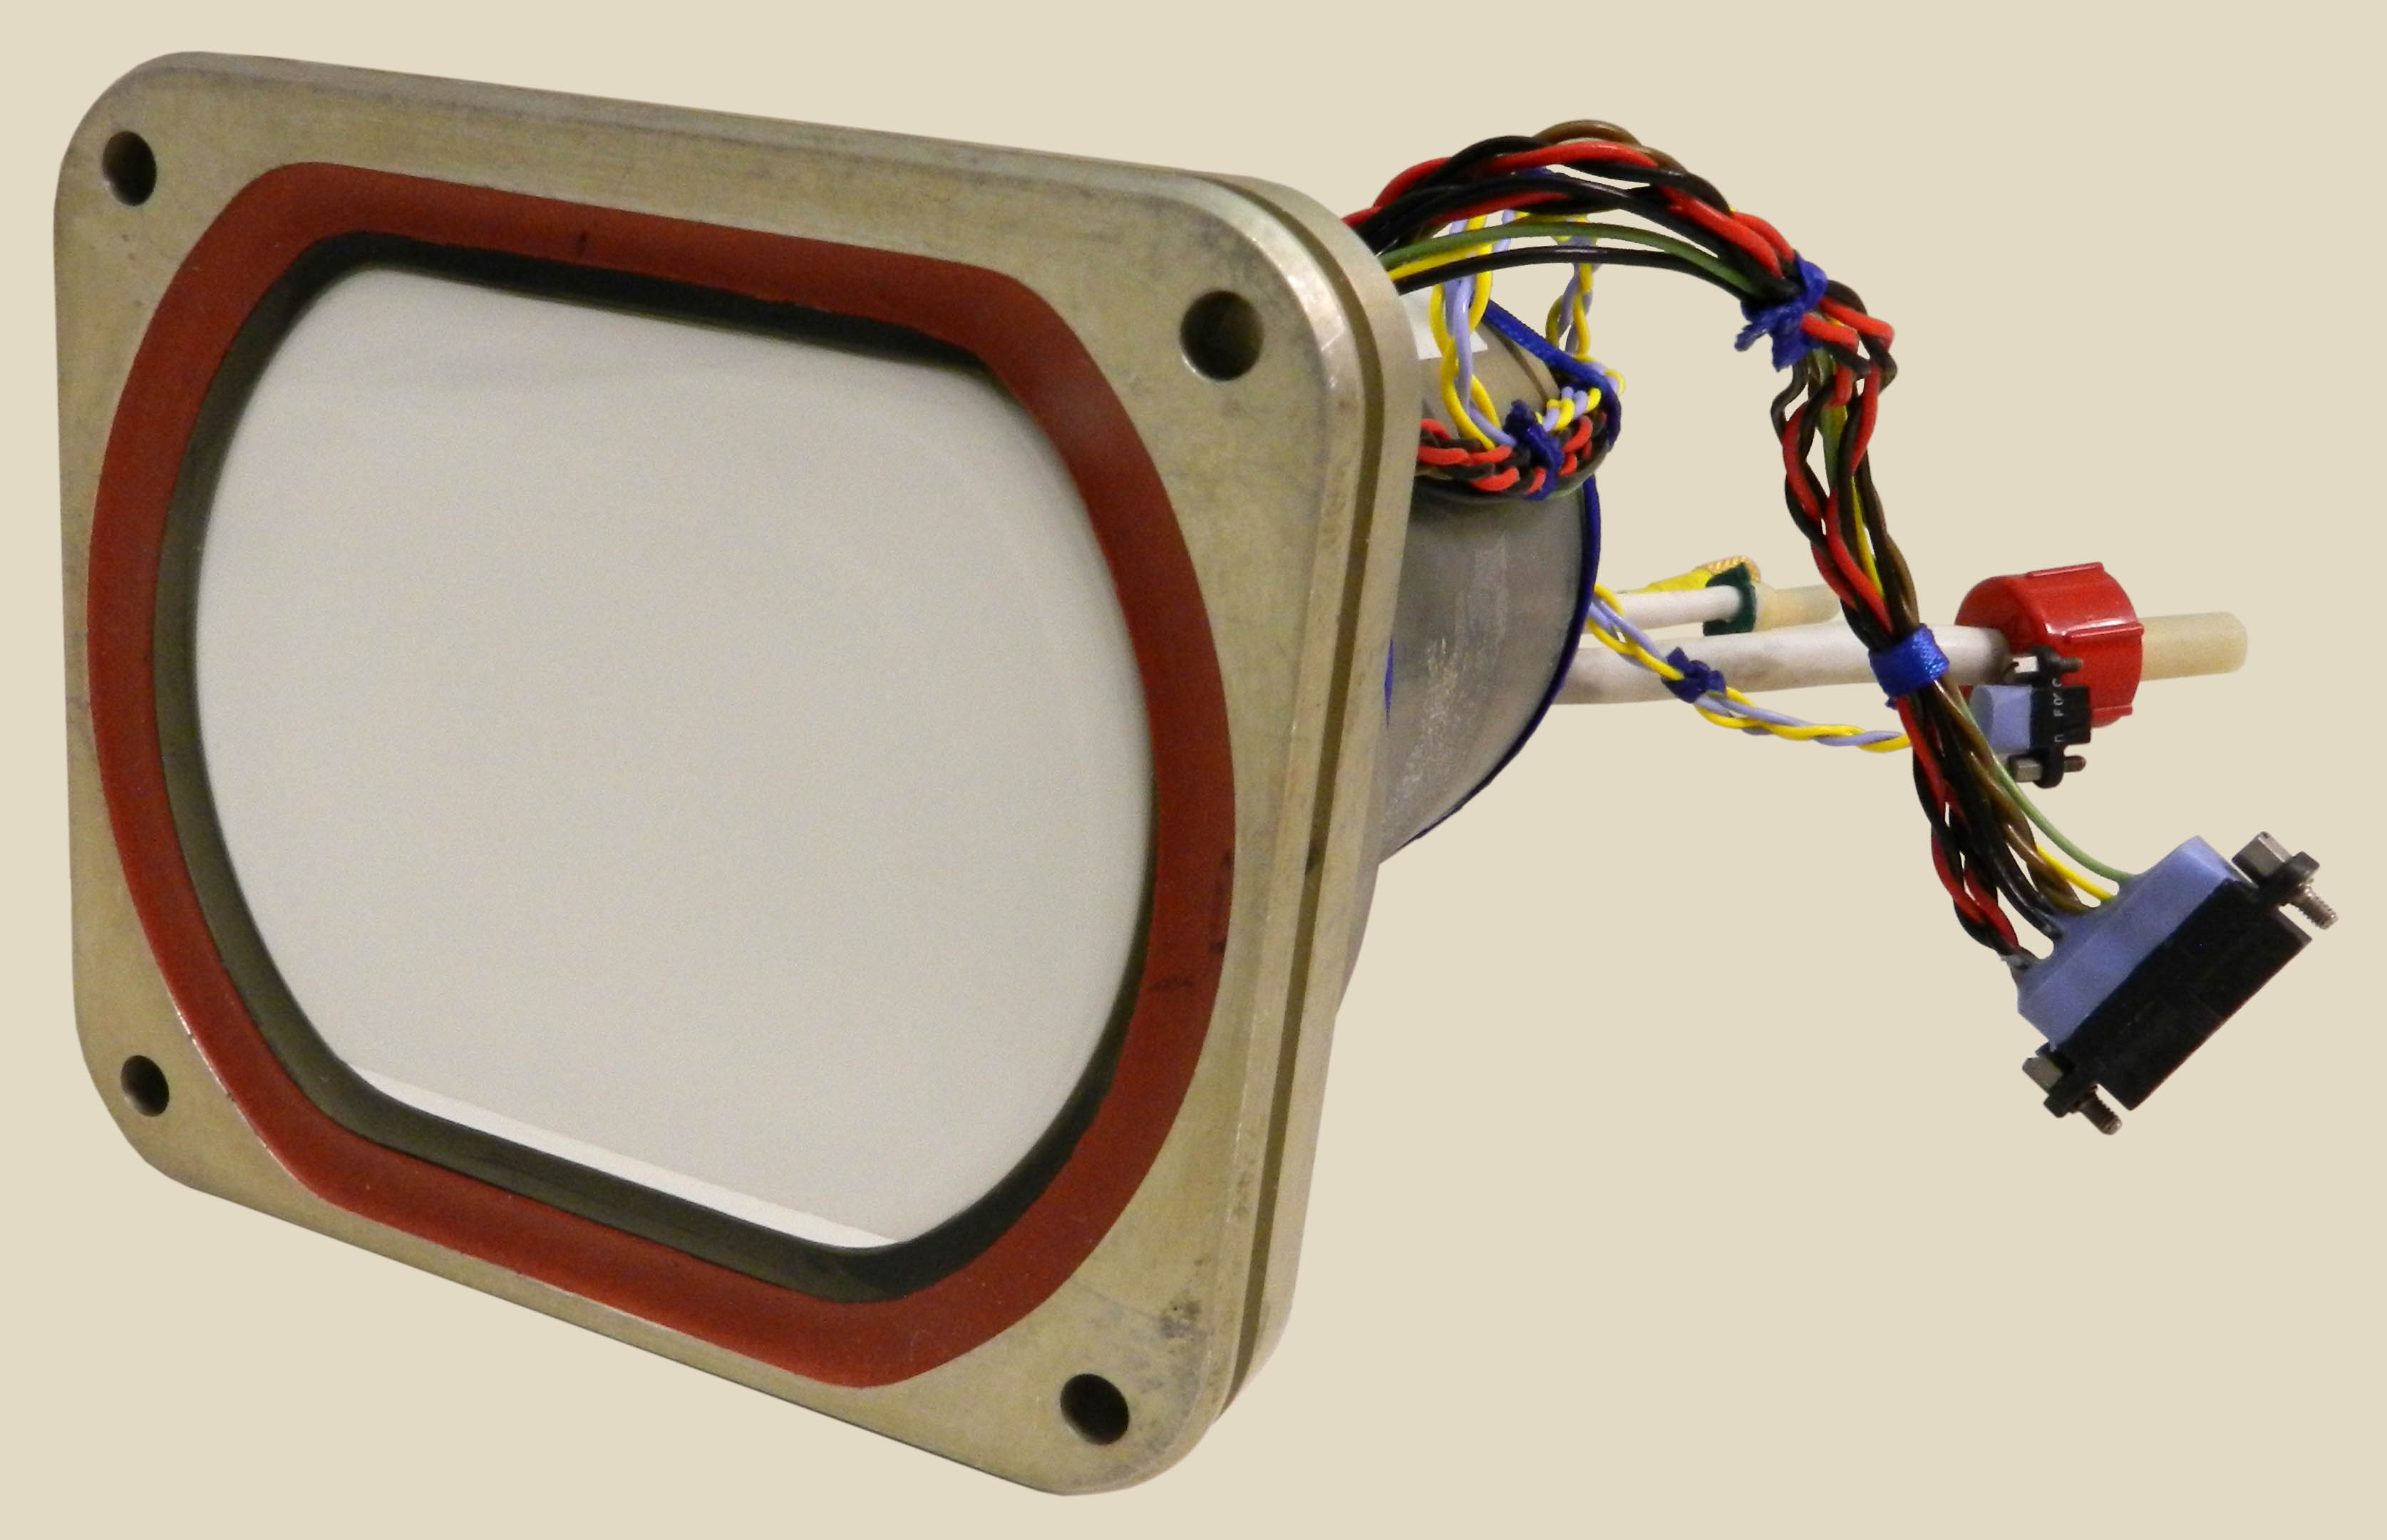 HUD Cathode Ray Tube